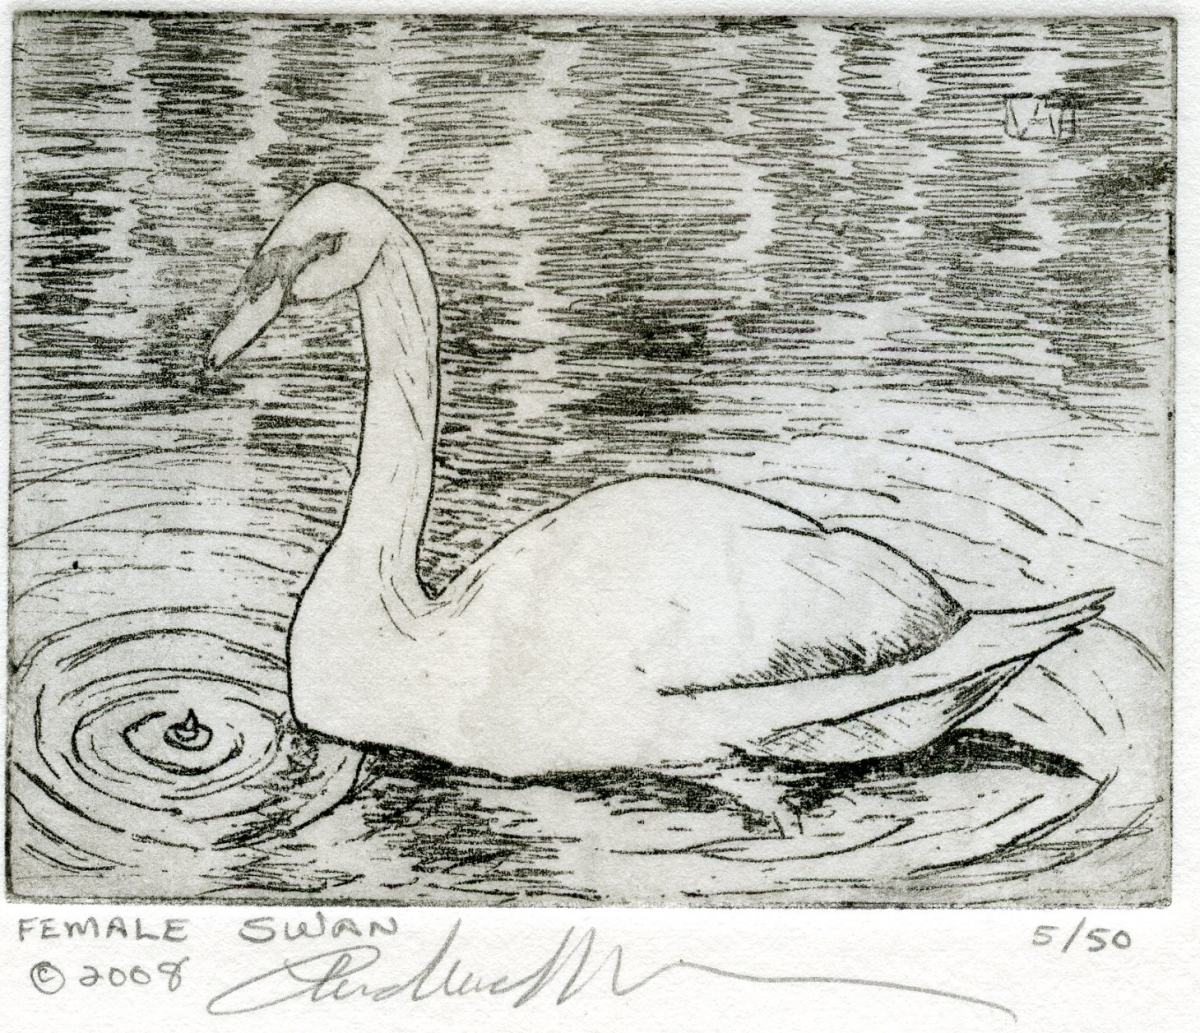 Female Swan (large view)